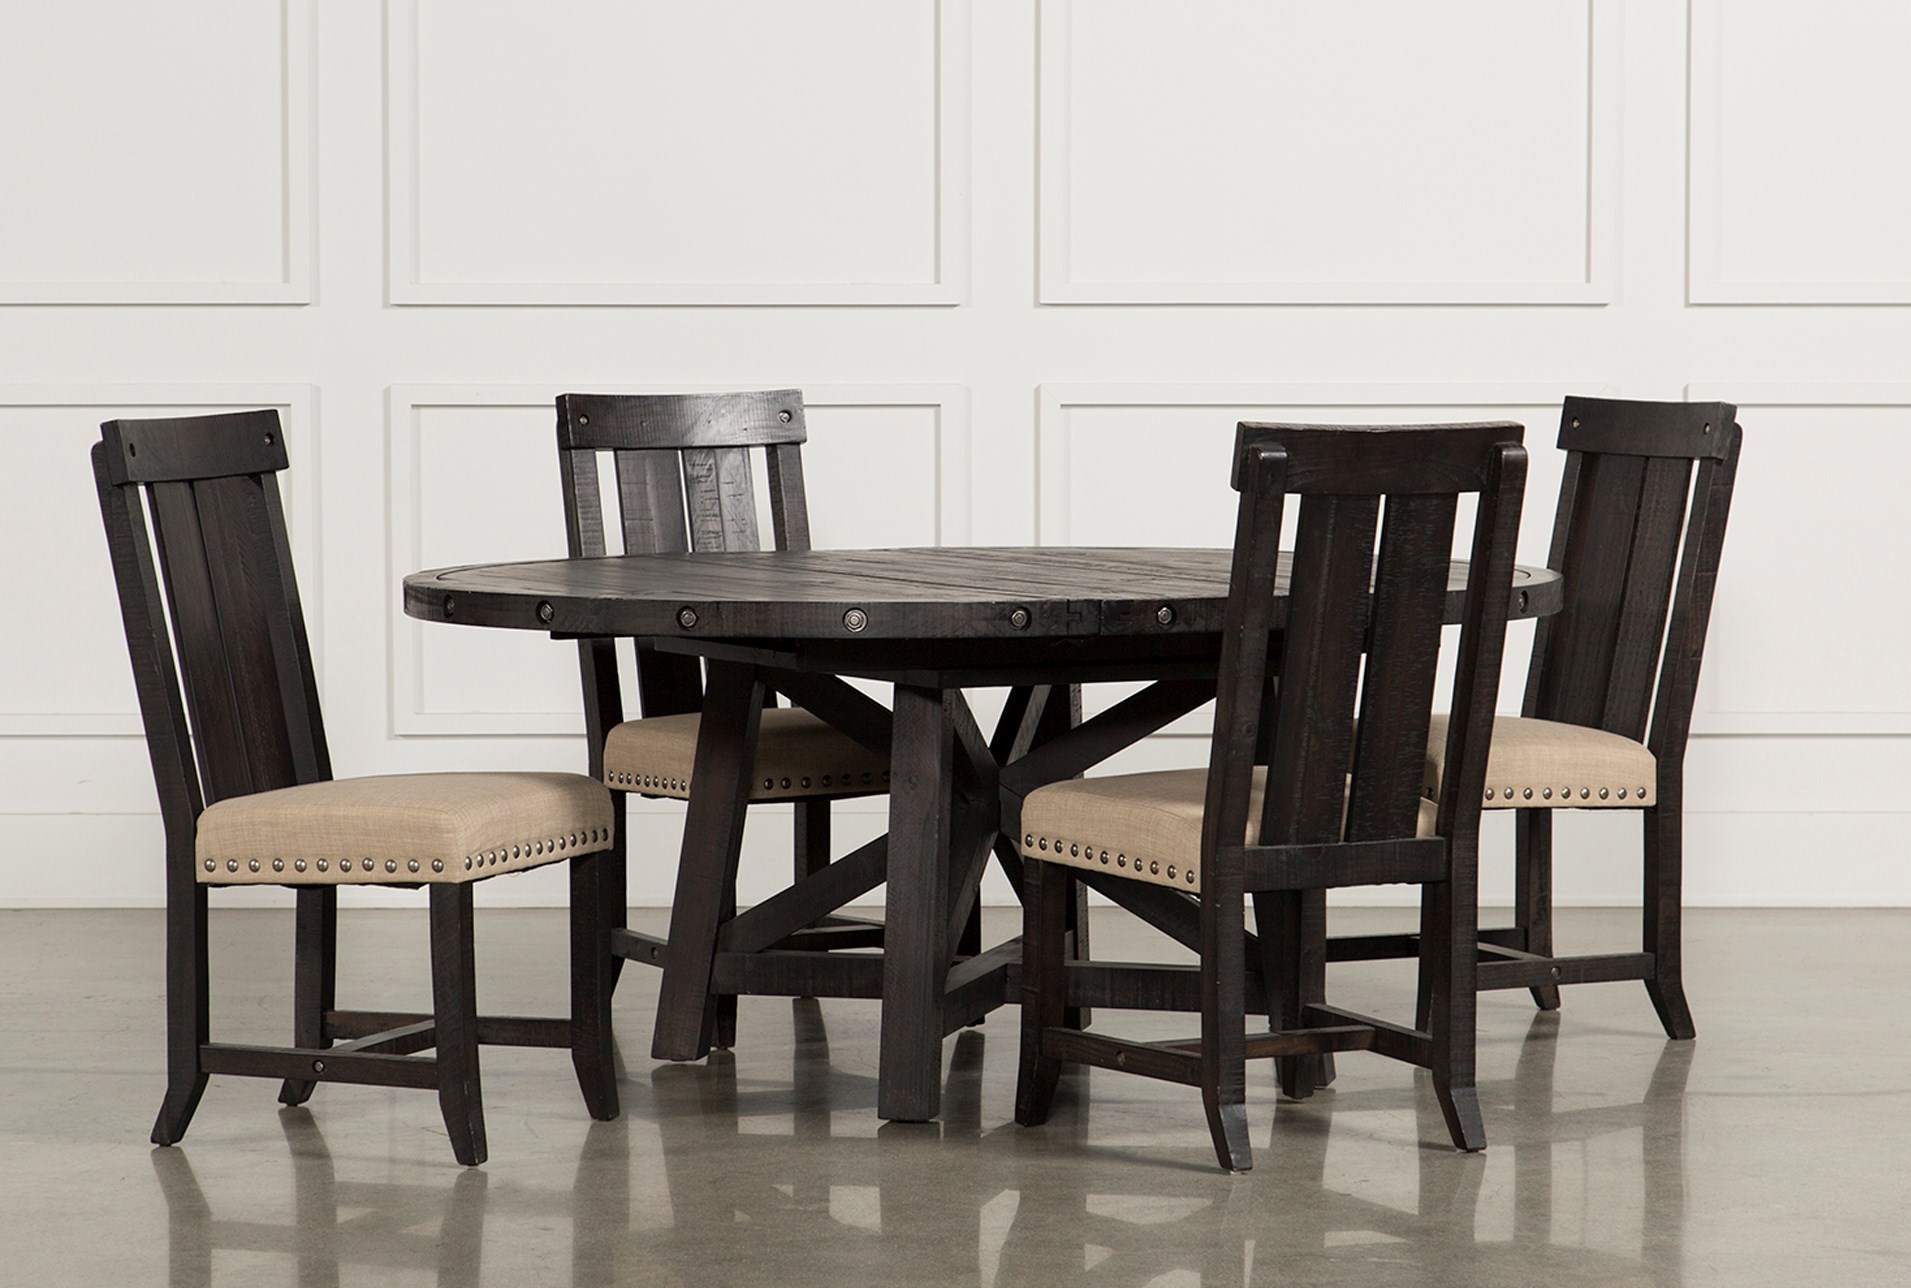 Jaxon 5 Piece Extension Round Dining Set W Wood Chairs Qty 1 Has Been Successfully Added To Your Cart